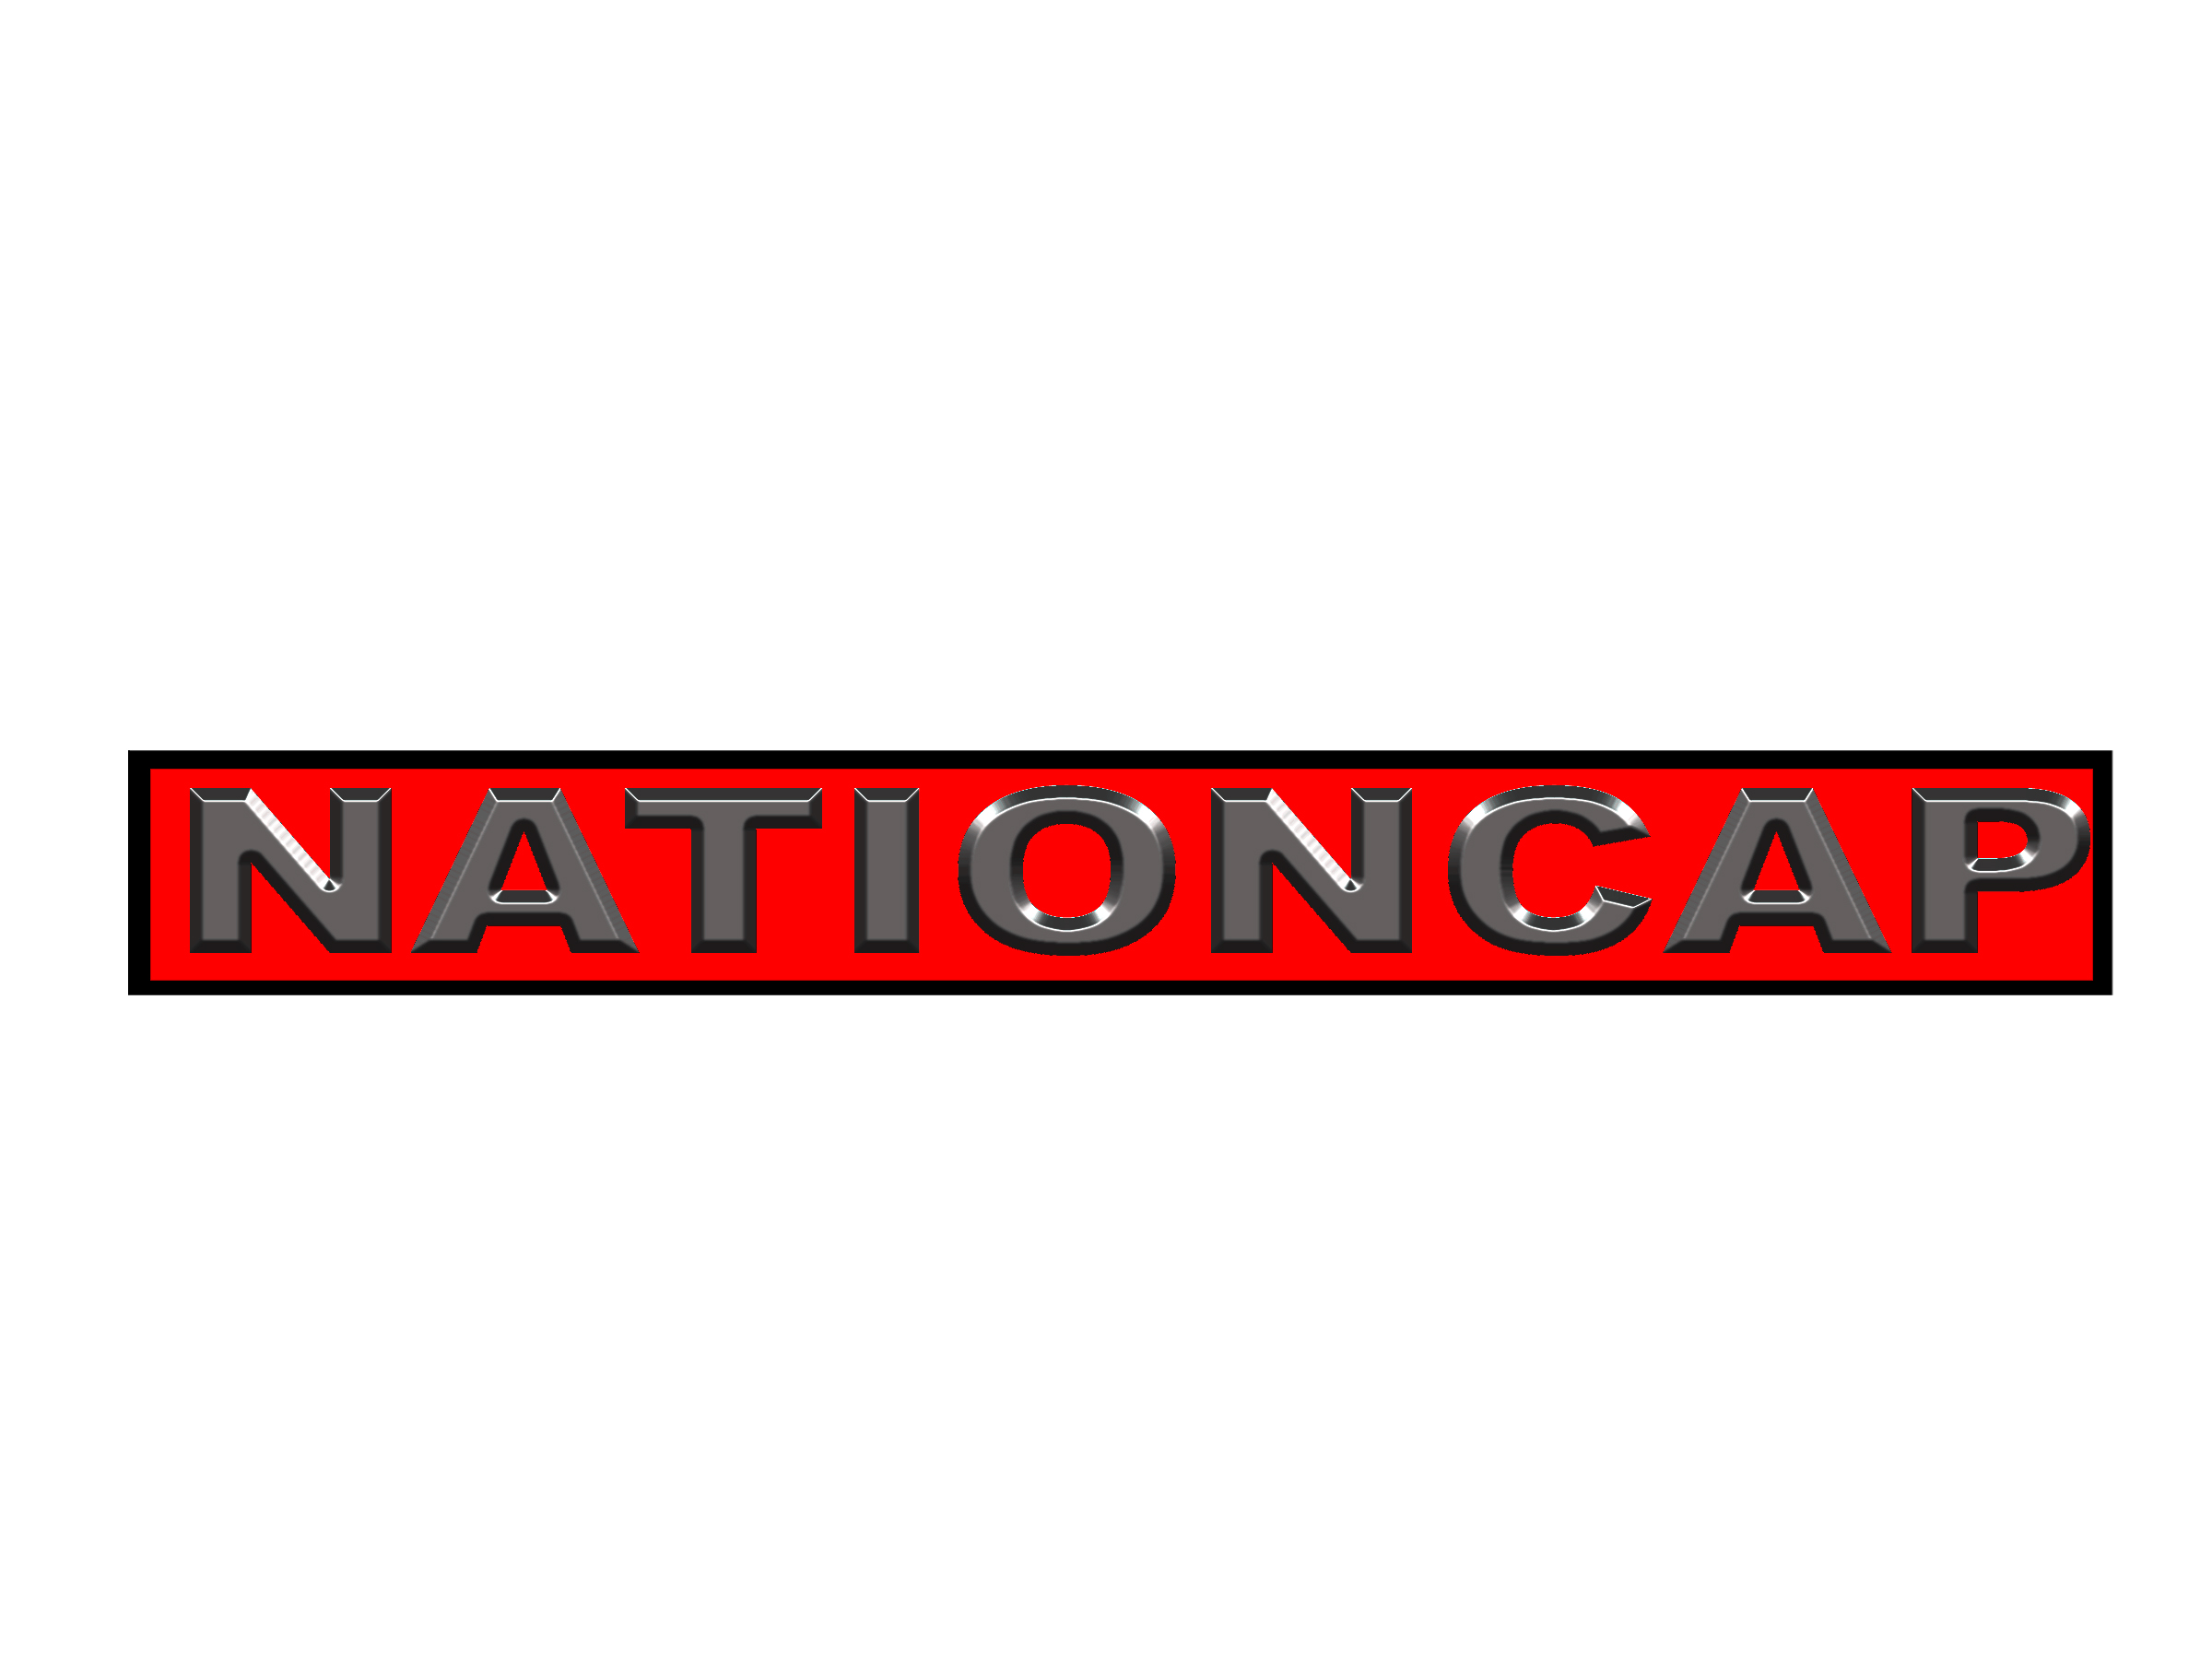 NATIONCAP-LOGO-no-back.png